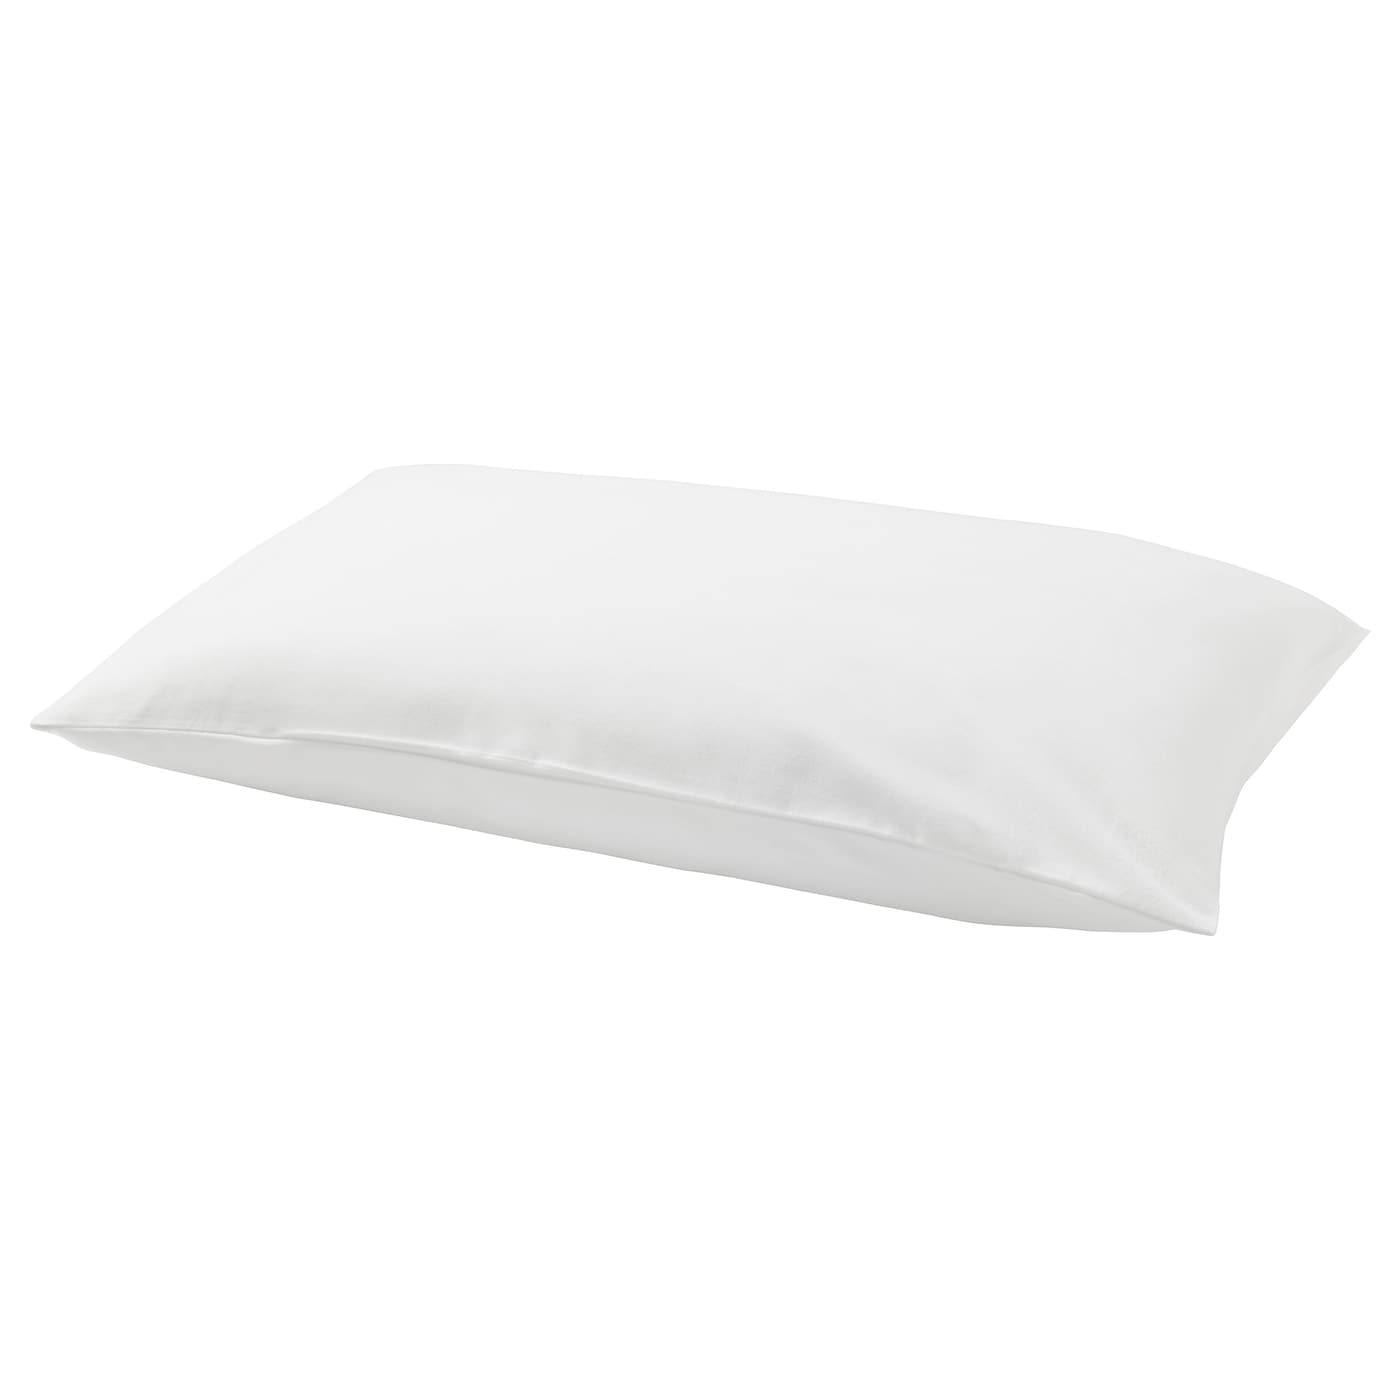 IKEA NORDRUTA pillowcase Pure cotton that feels soft and nice against your skin.